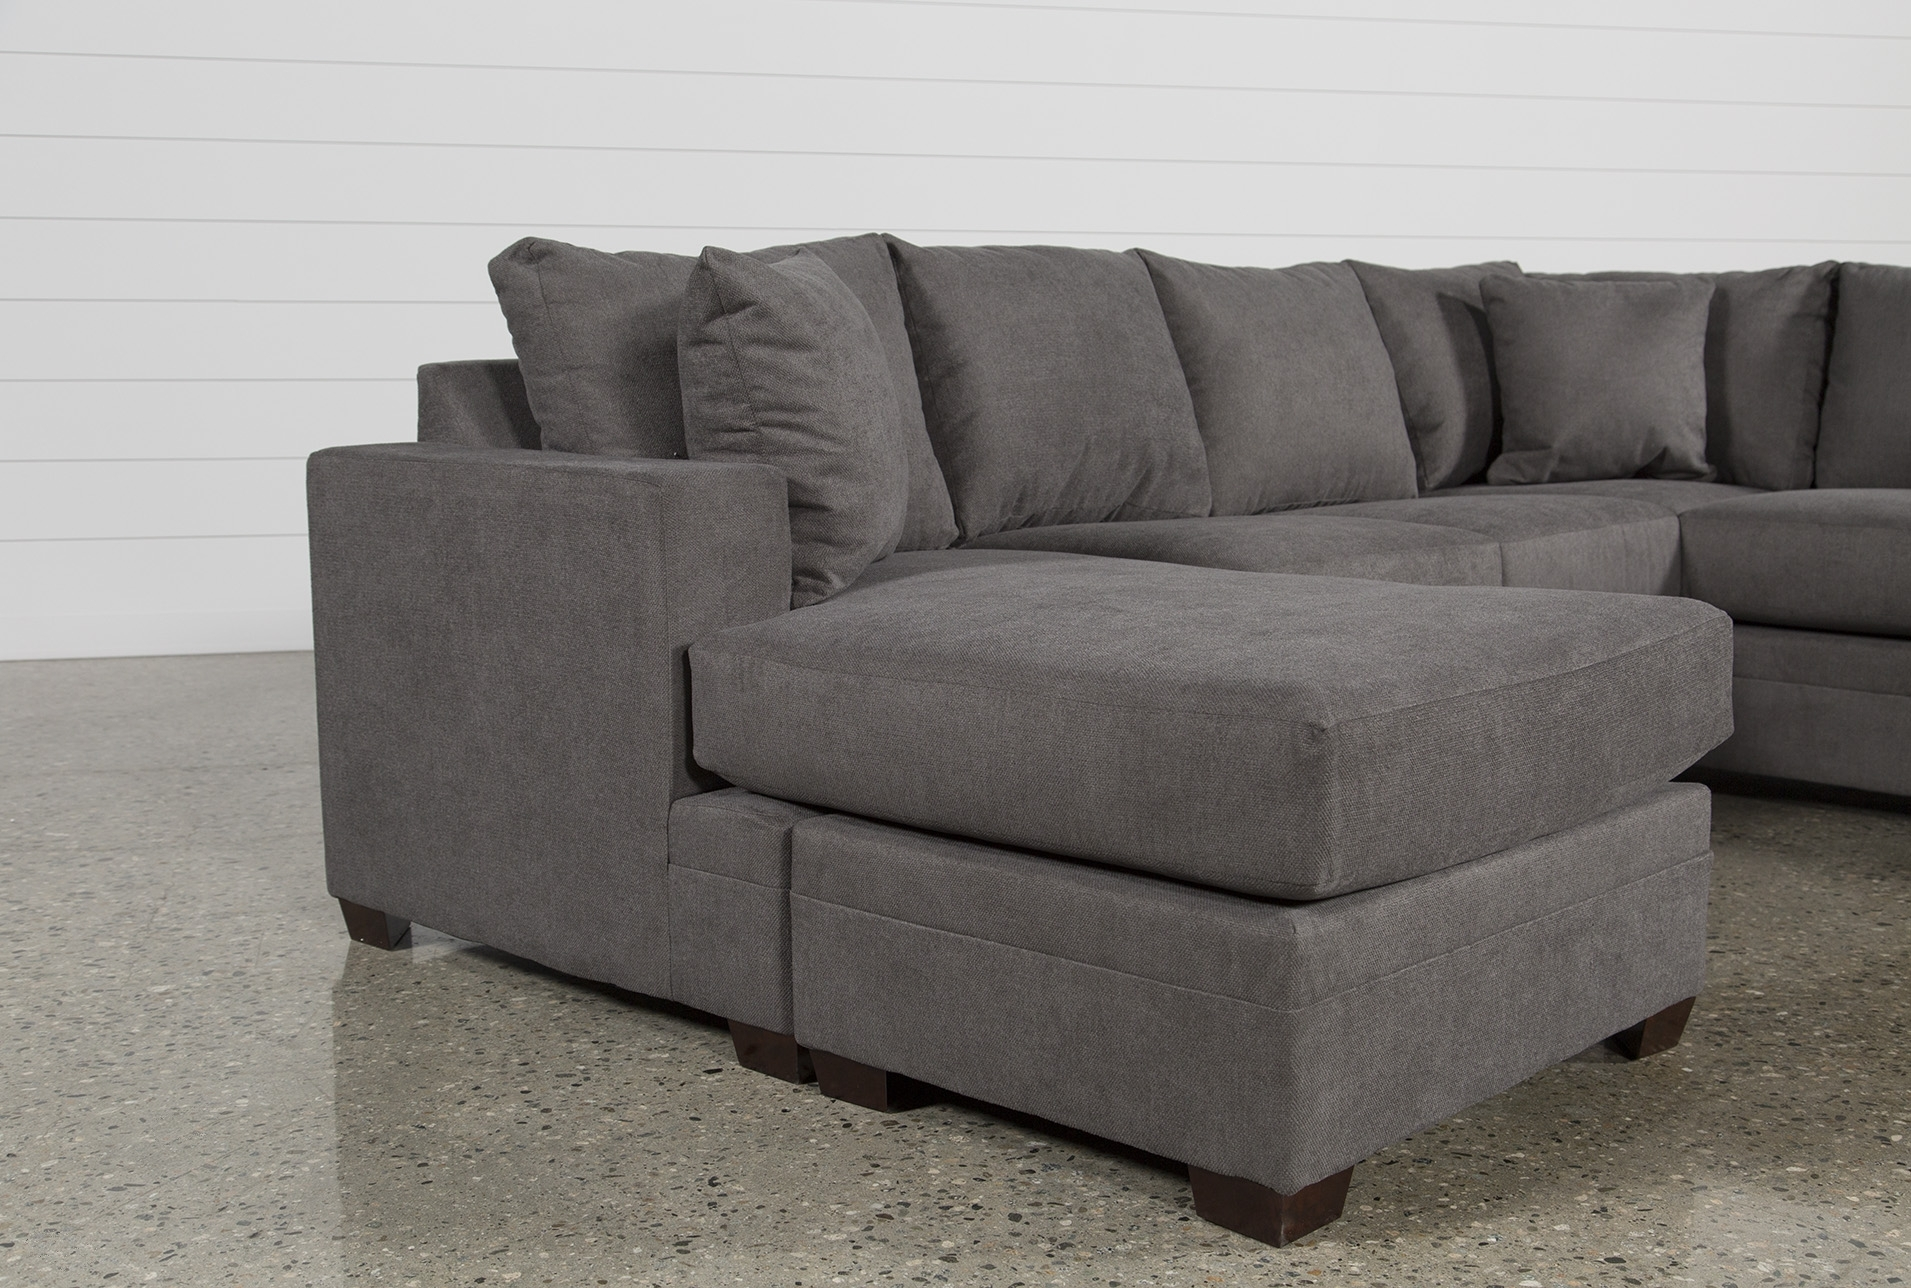 Kerri 2 Piece Sectional W/laf Chaise | Products | Pinterest With Regard To Kerri 2 Piece Sectionals With Laf Chaise (Image 10 of 25)